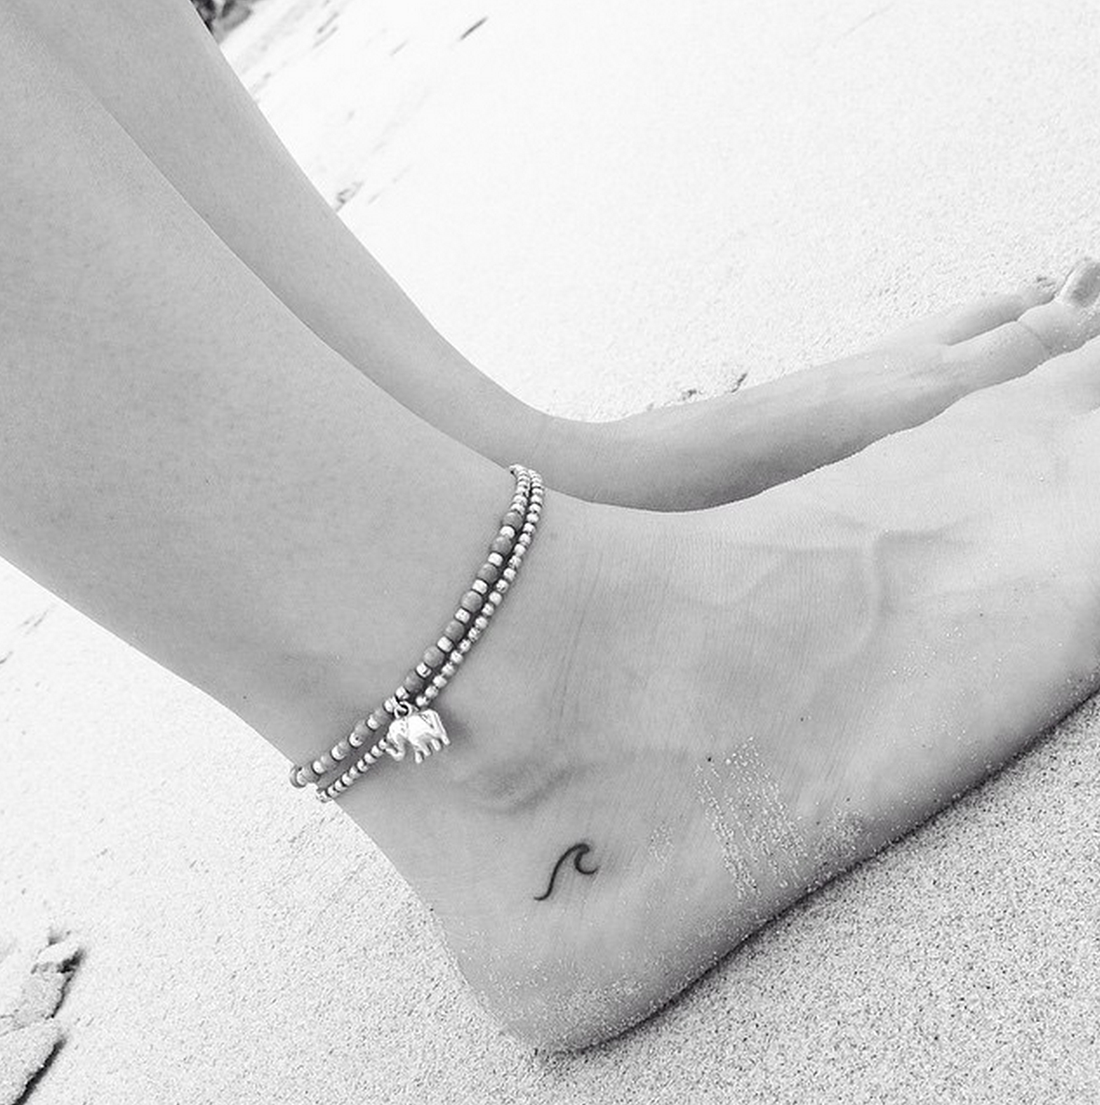 e857690eae9d8 Ocean Inkling | 15 Tiny Tattoos You're Going to Obsess Over via Brit + Co.